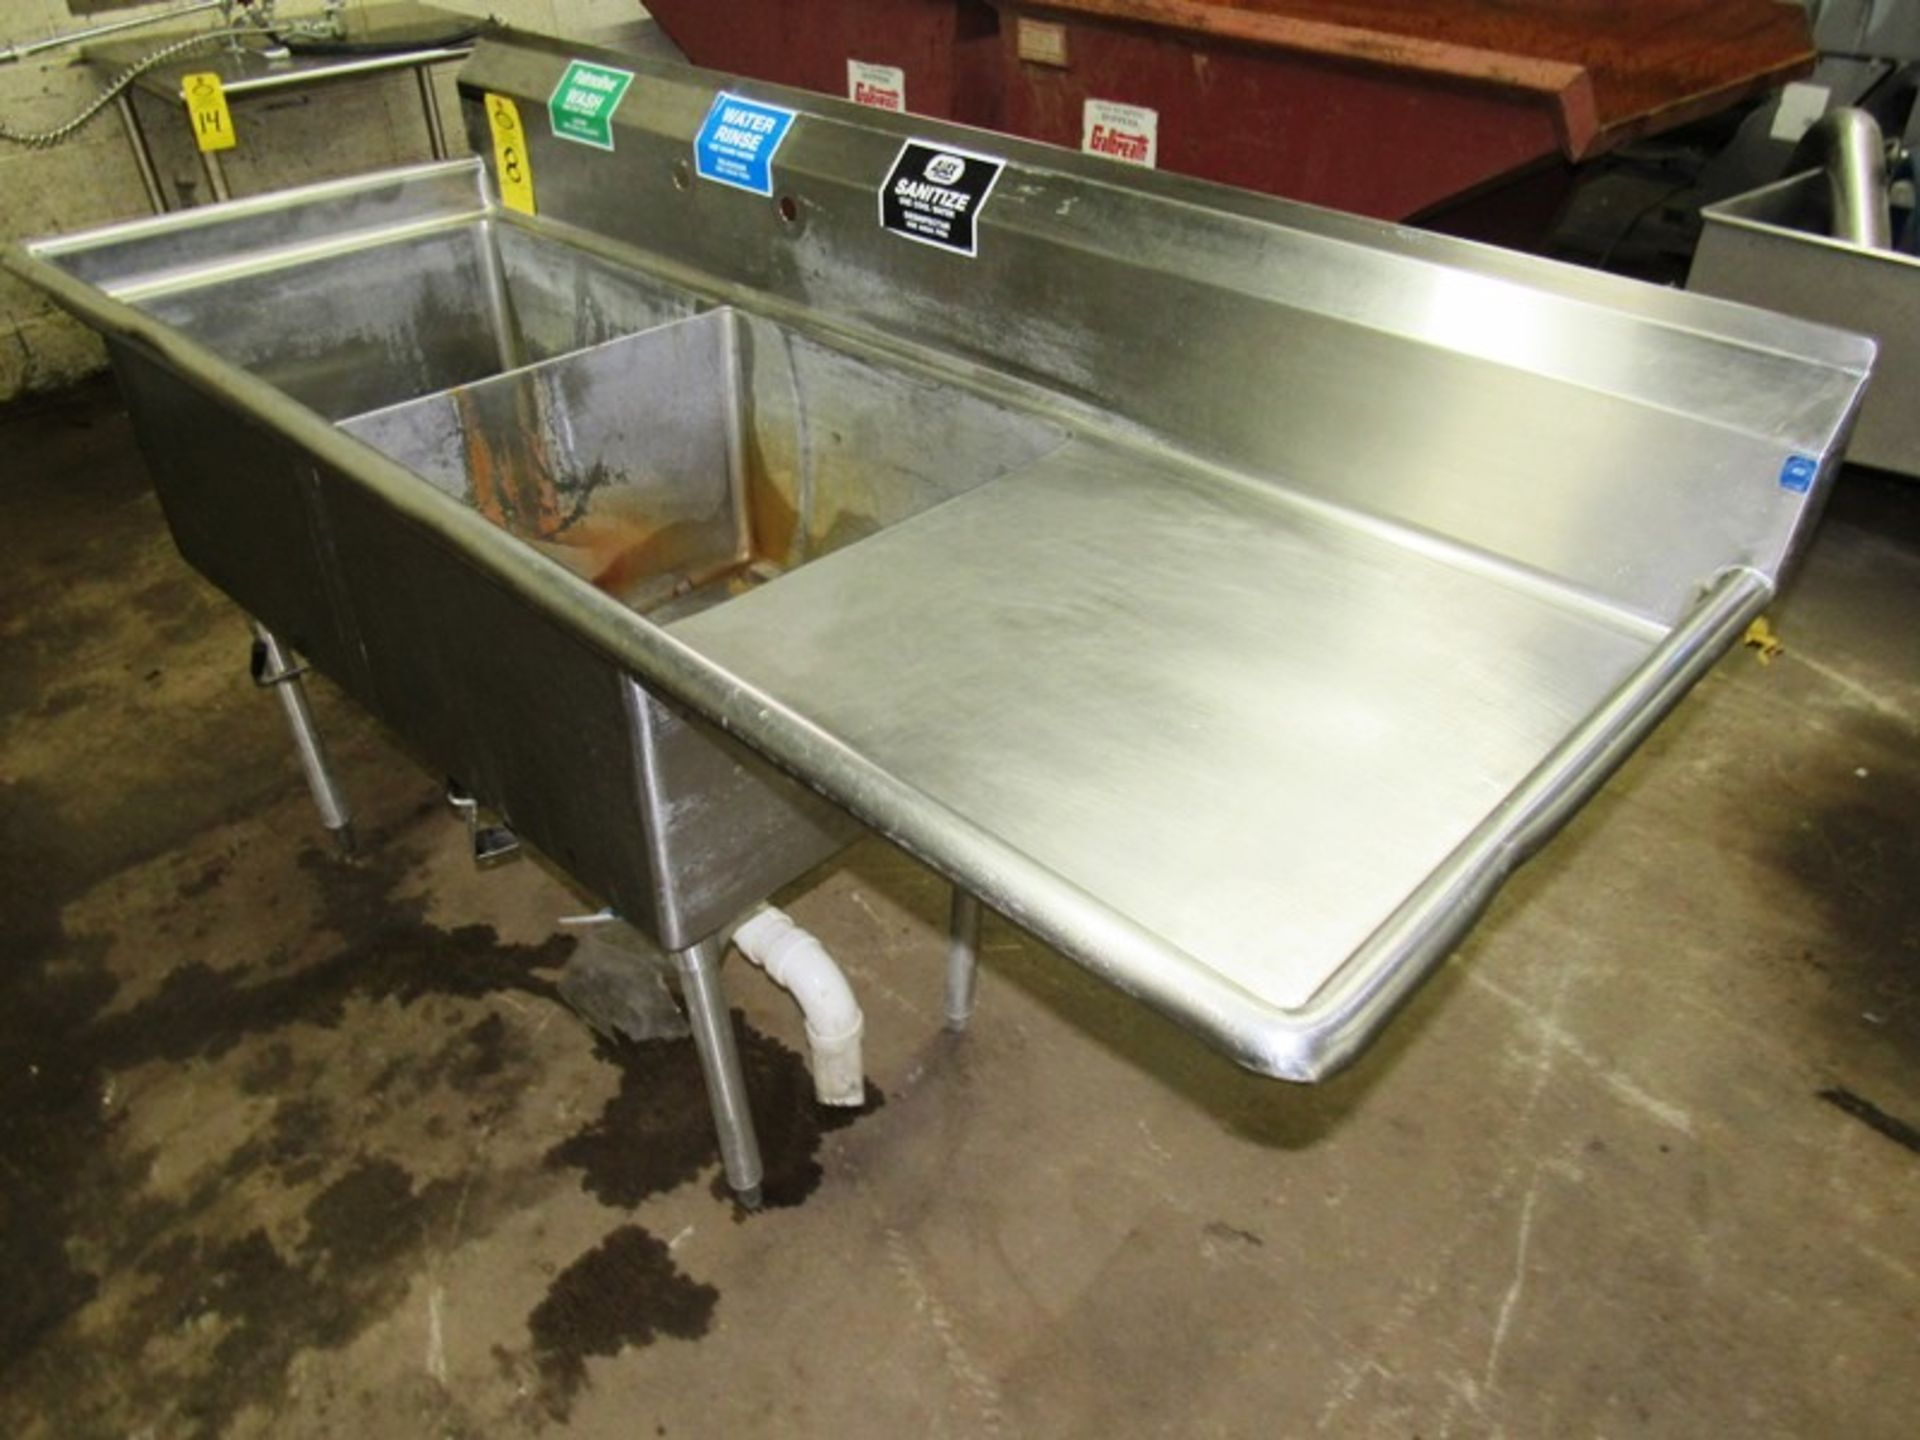 "Stainless Steel Sink, 28"" W X 6' L, (2) bays, 13"" deep, 24"" sideboard, space for faucet with sprayer - Image 3 of 4"